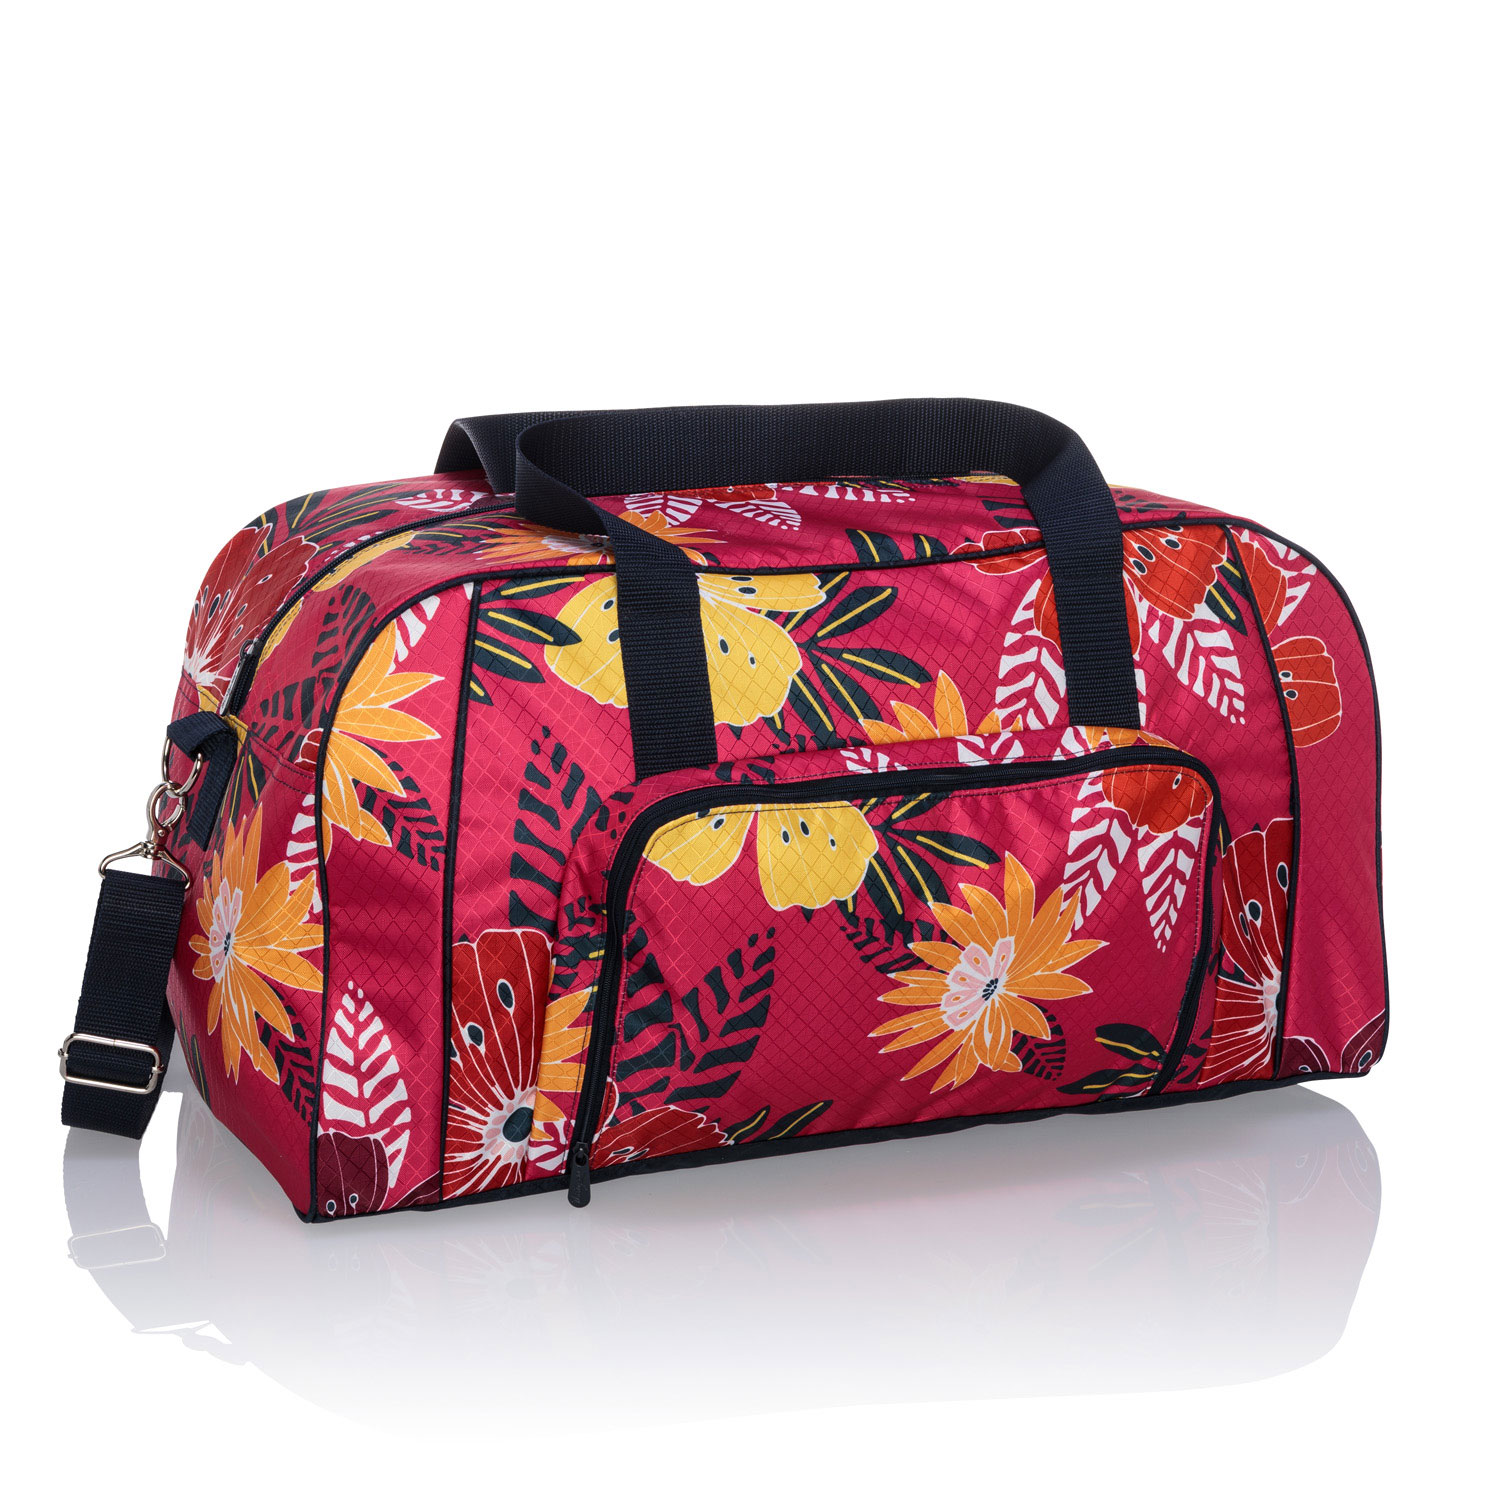 80d70b5857 Charcoal Crosshatch - All Packed Duffle - Thirty-One Gifts